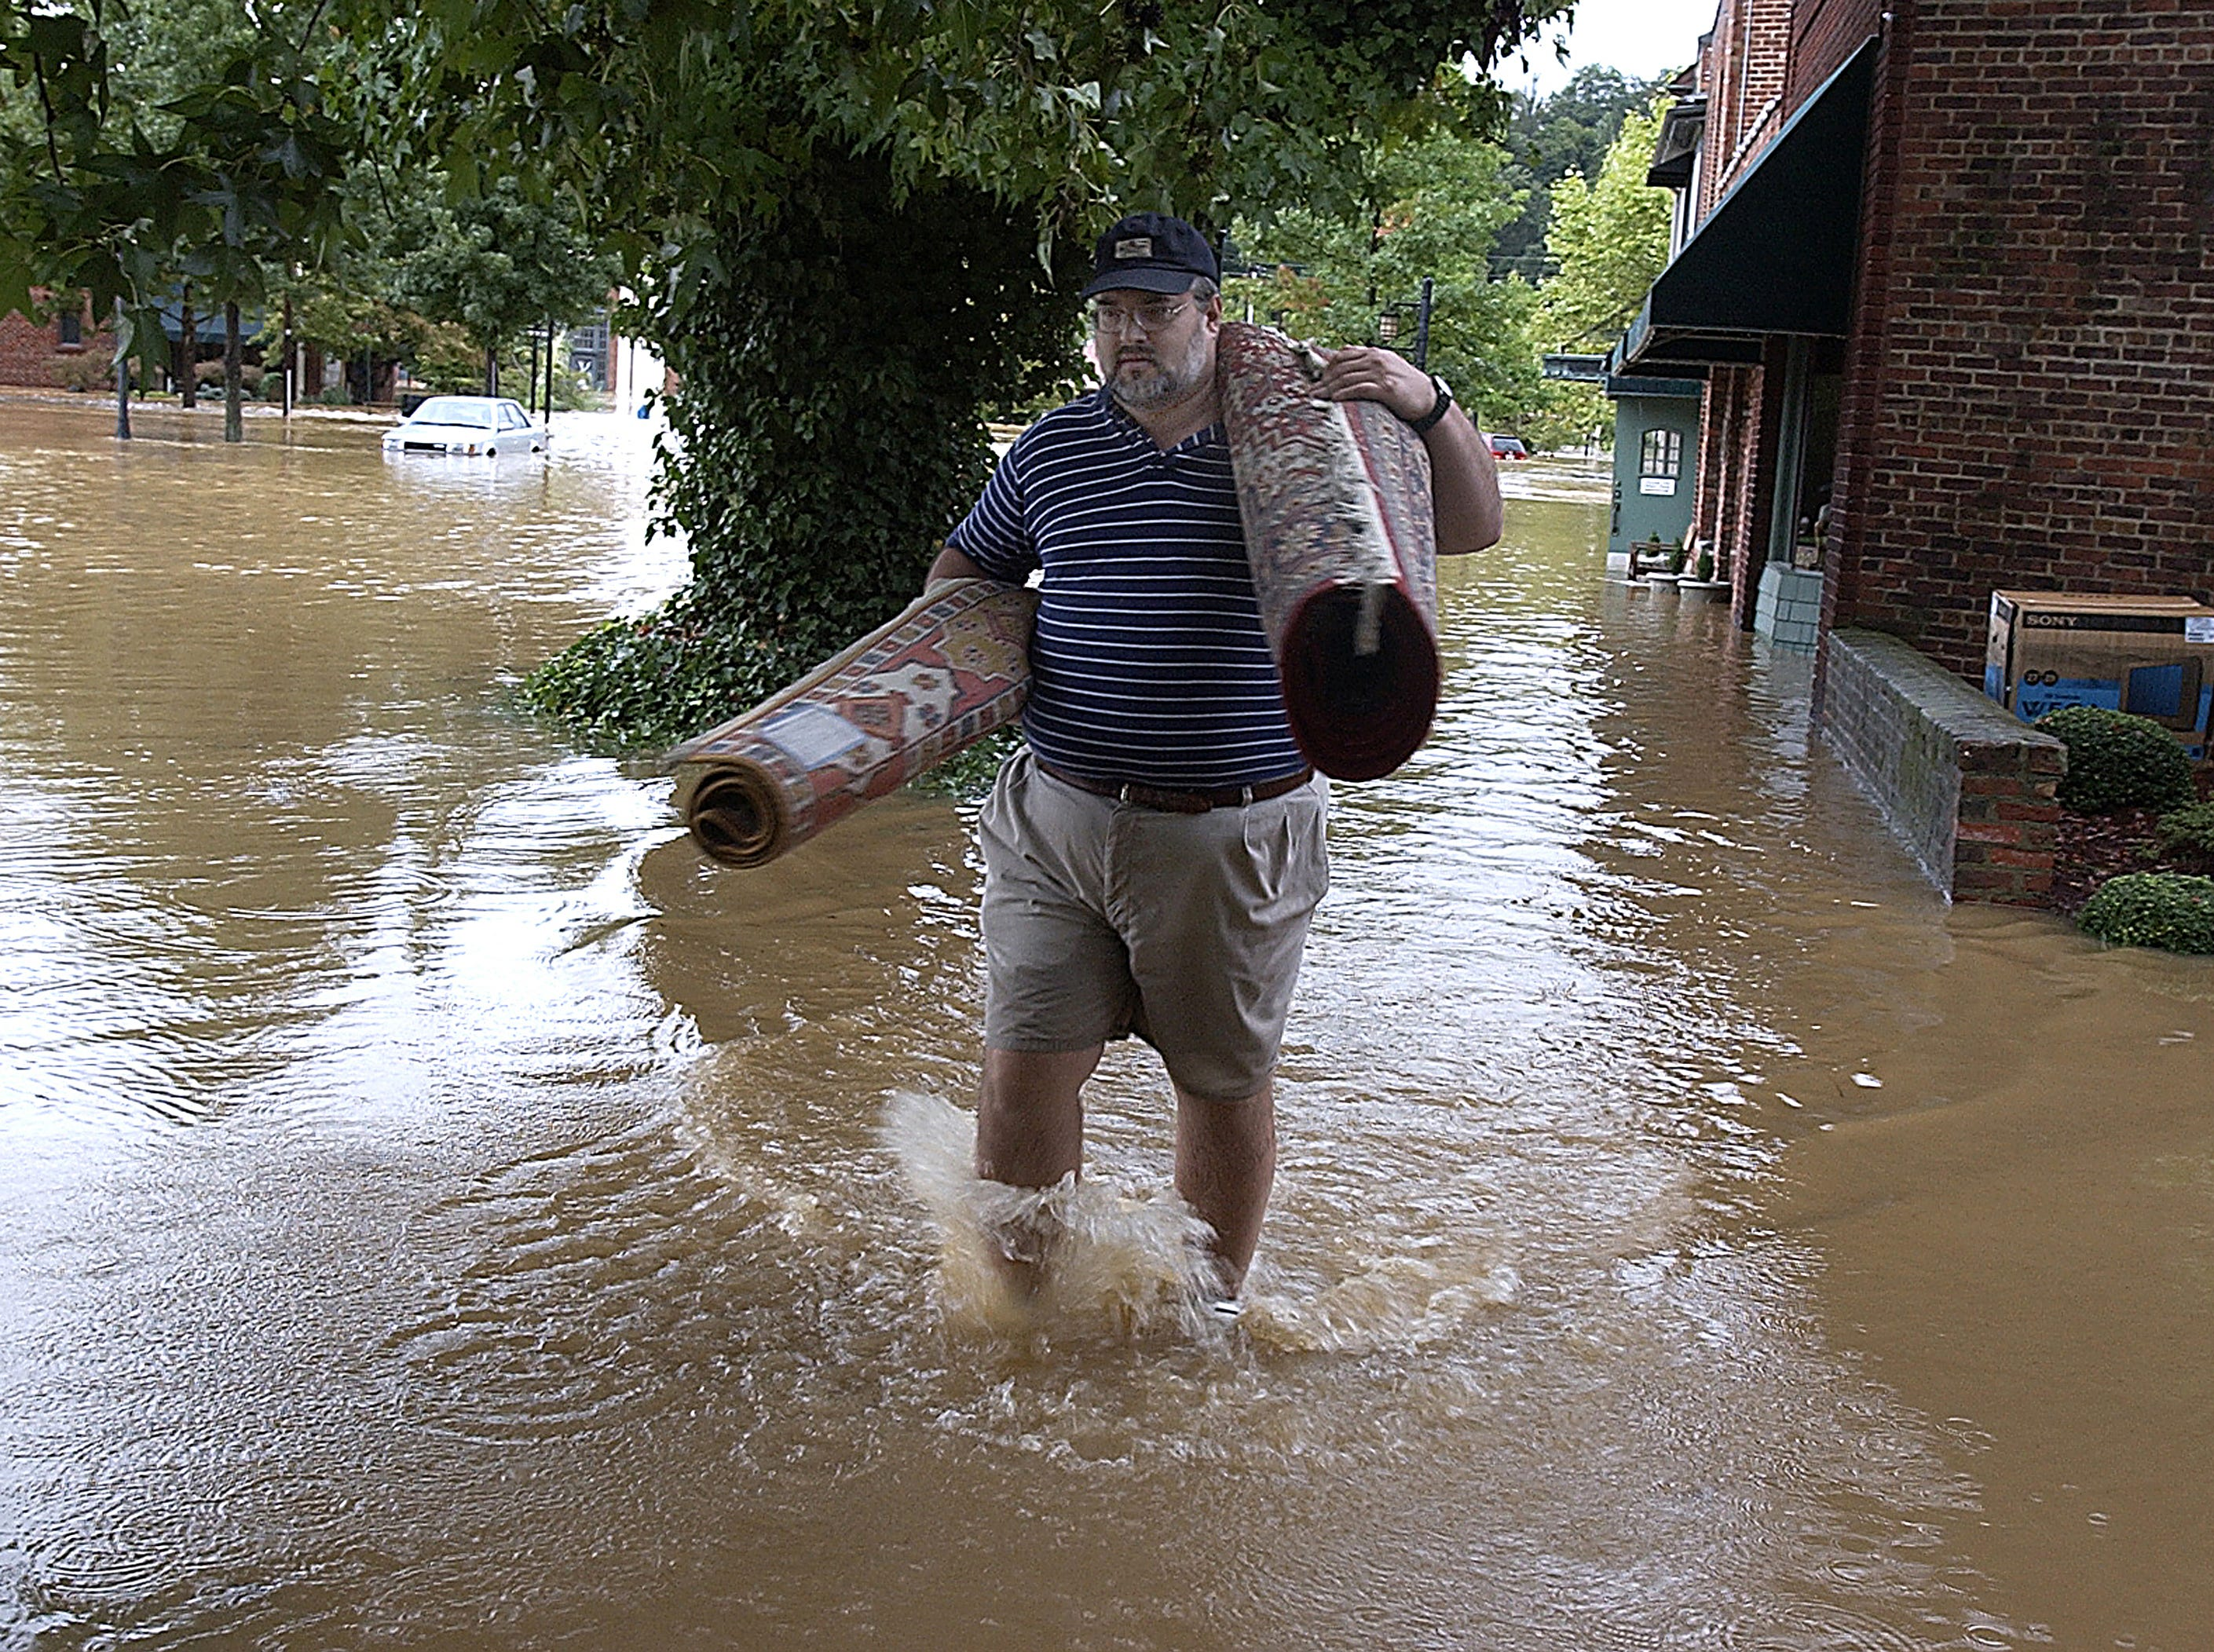 David Ballew carries undamaged area carpets from the Jos. A. Banks store in Biltmore Village after floodwaters from Hurricane Frances flooded Biltmore Village on Sept. 8, 2004.